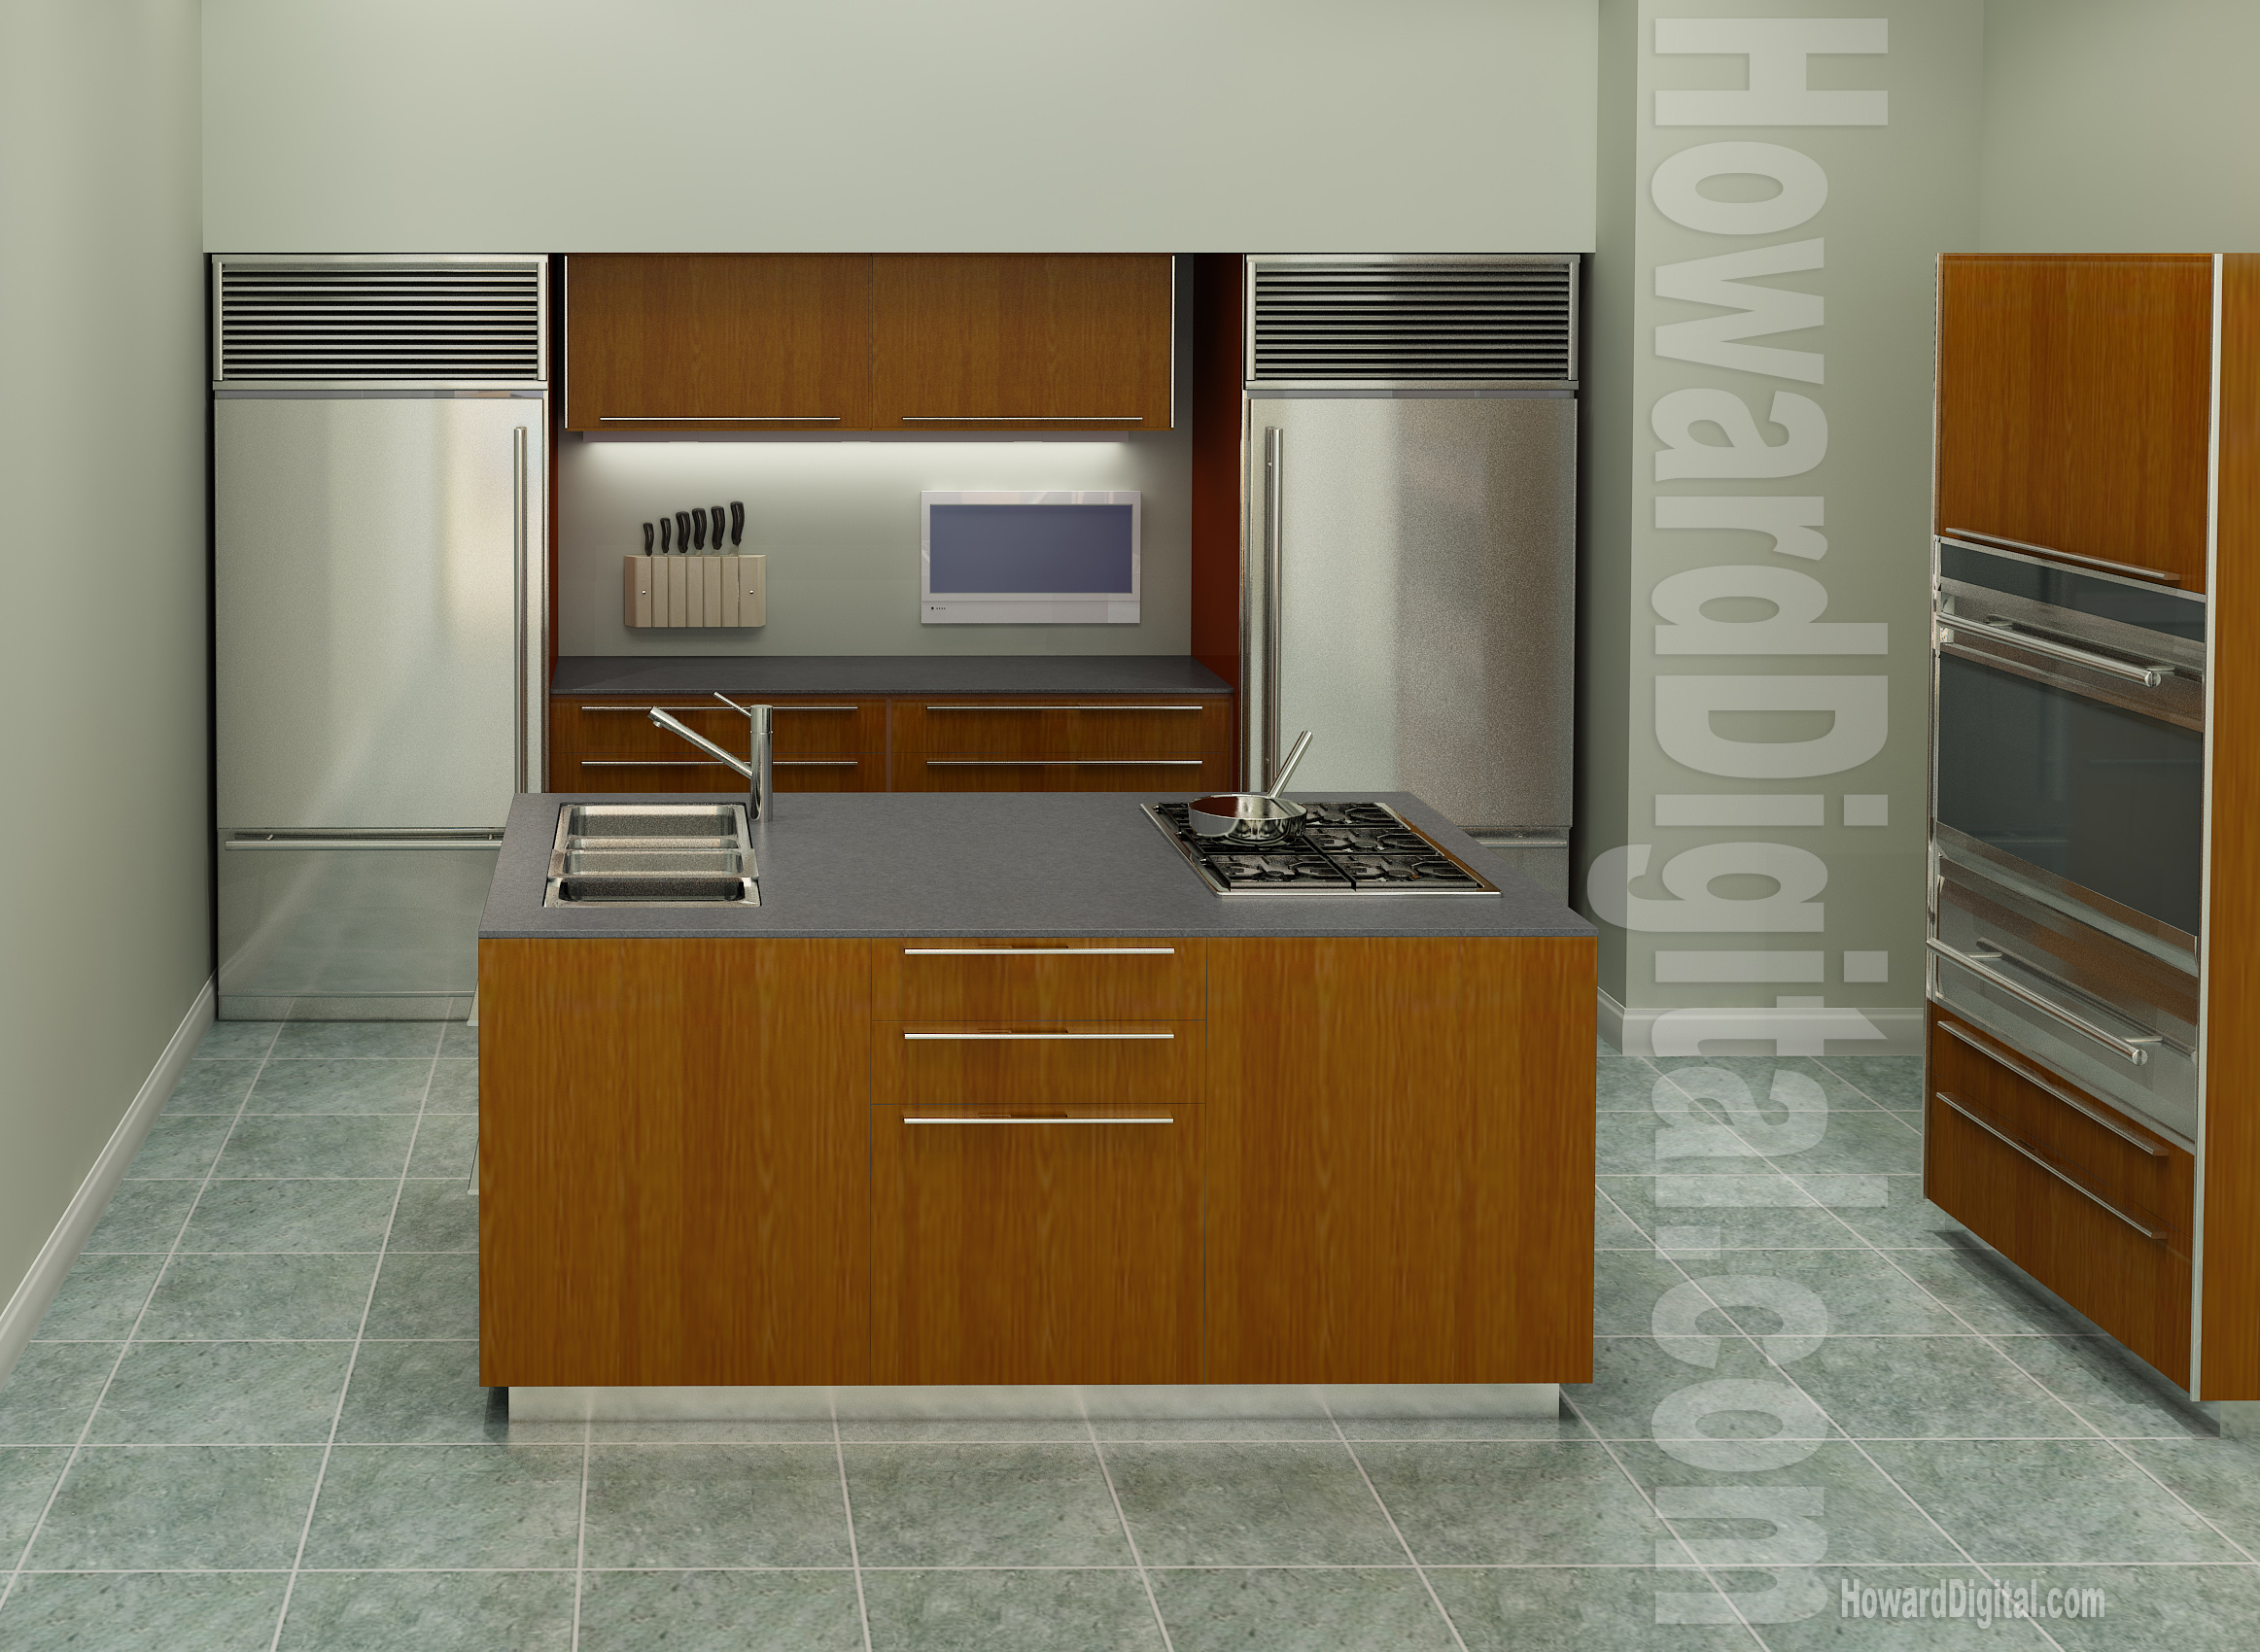 Kitchen interior howard digital - Interior design kitchen ...